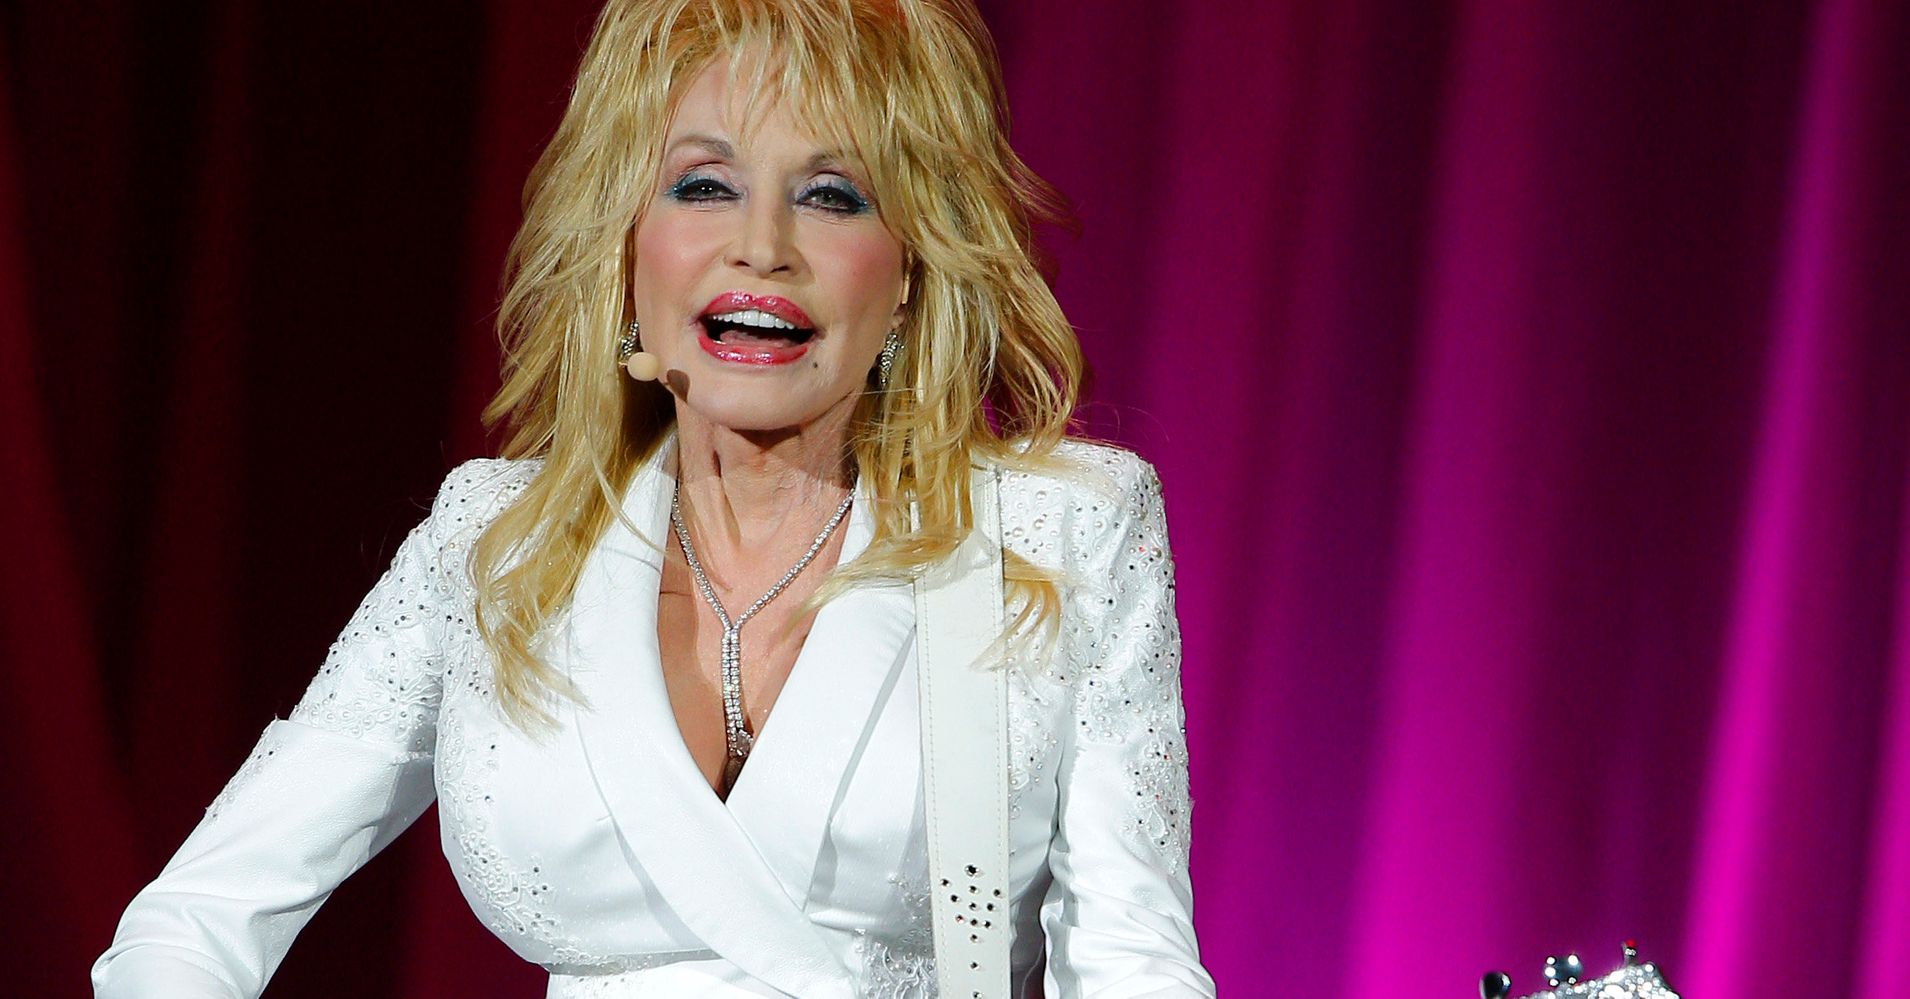 6 things you may not know about dolly parton on her 70th bday 6 things you may not know about dolly parton on her 70th bday huffpost publicscrutiny Choice Image